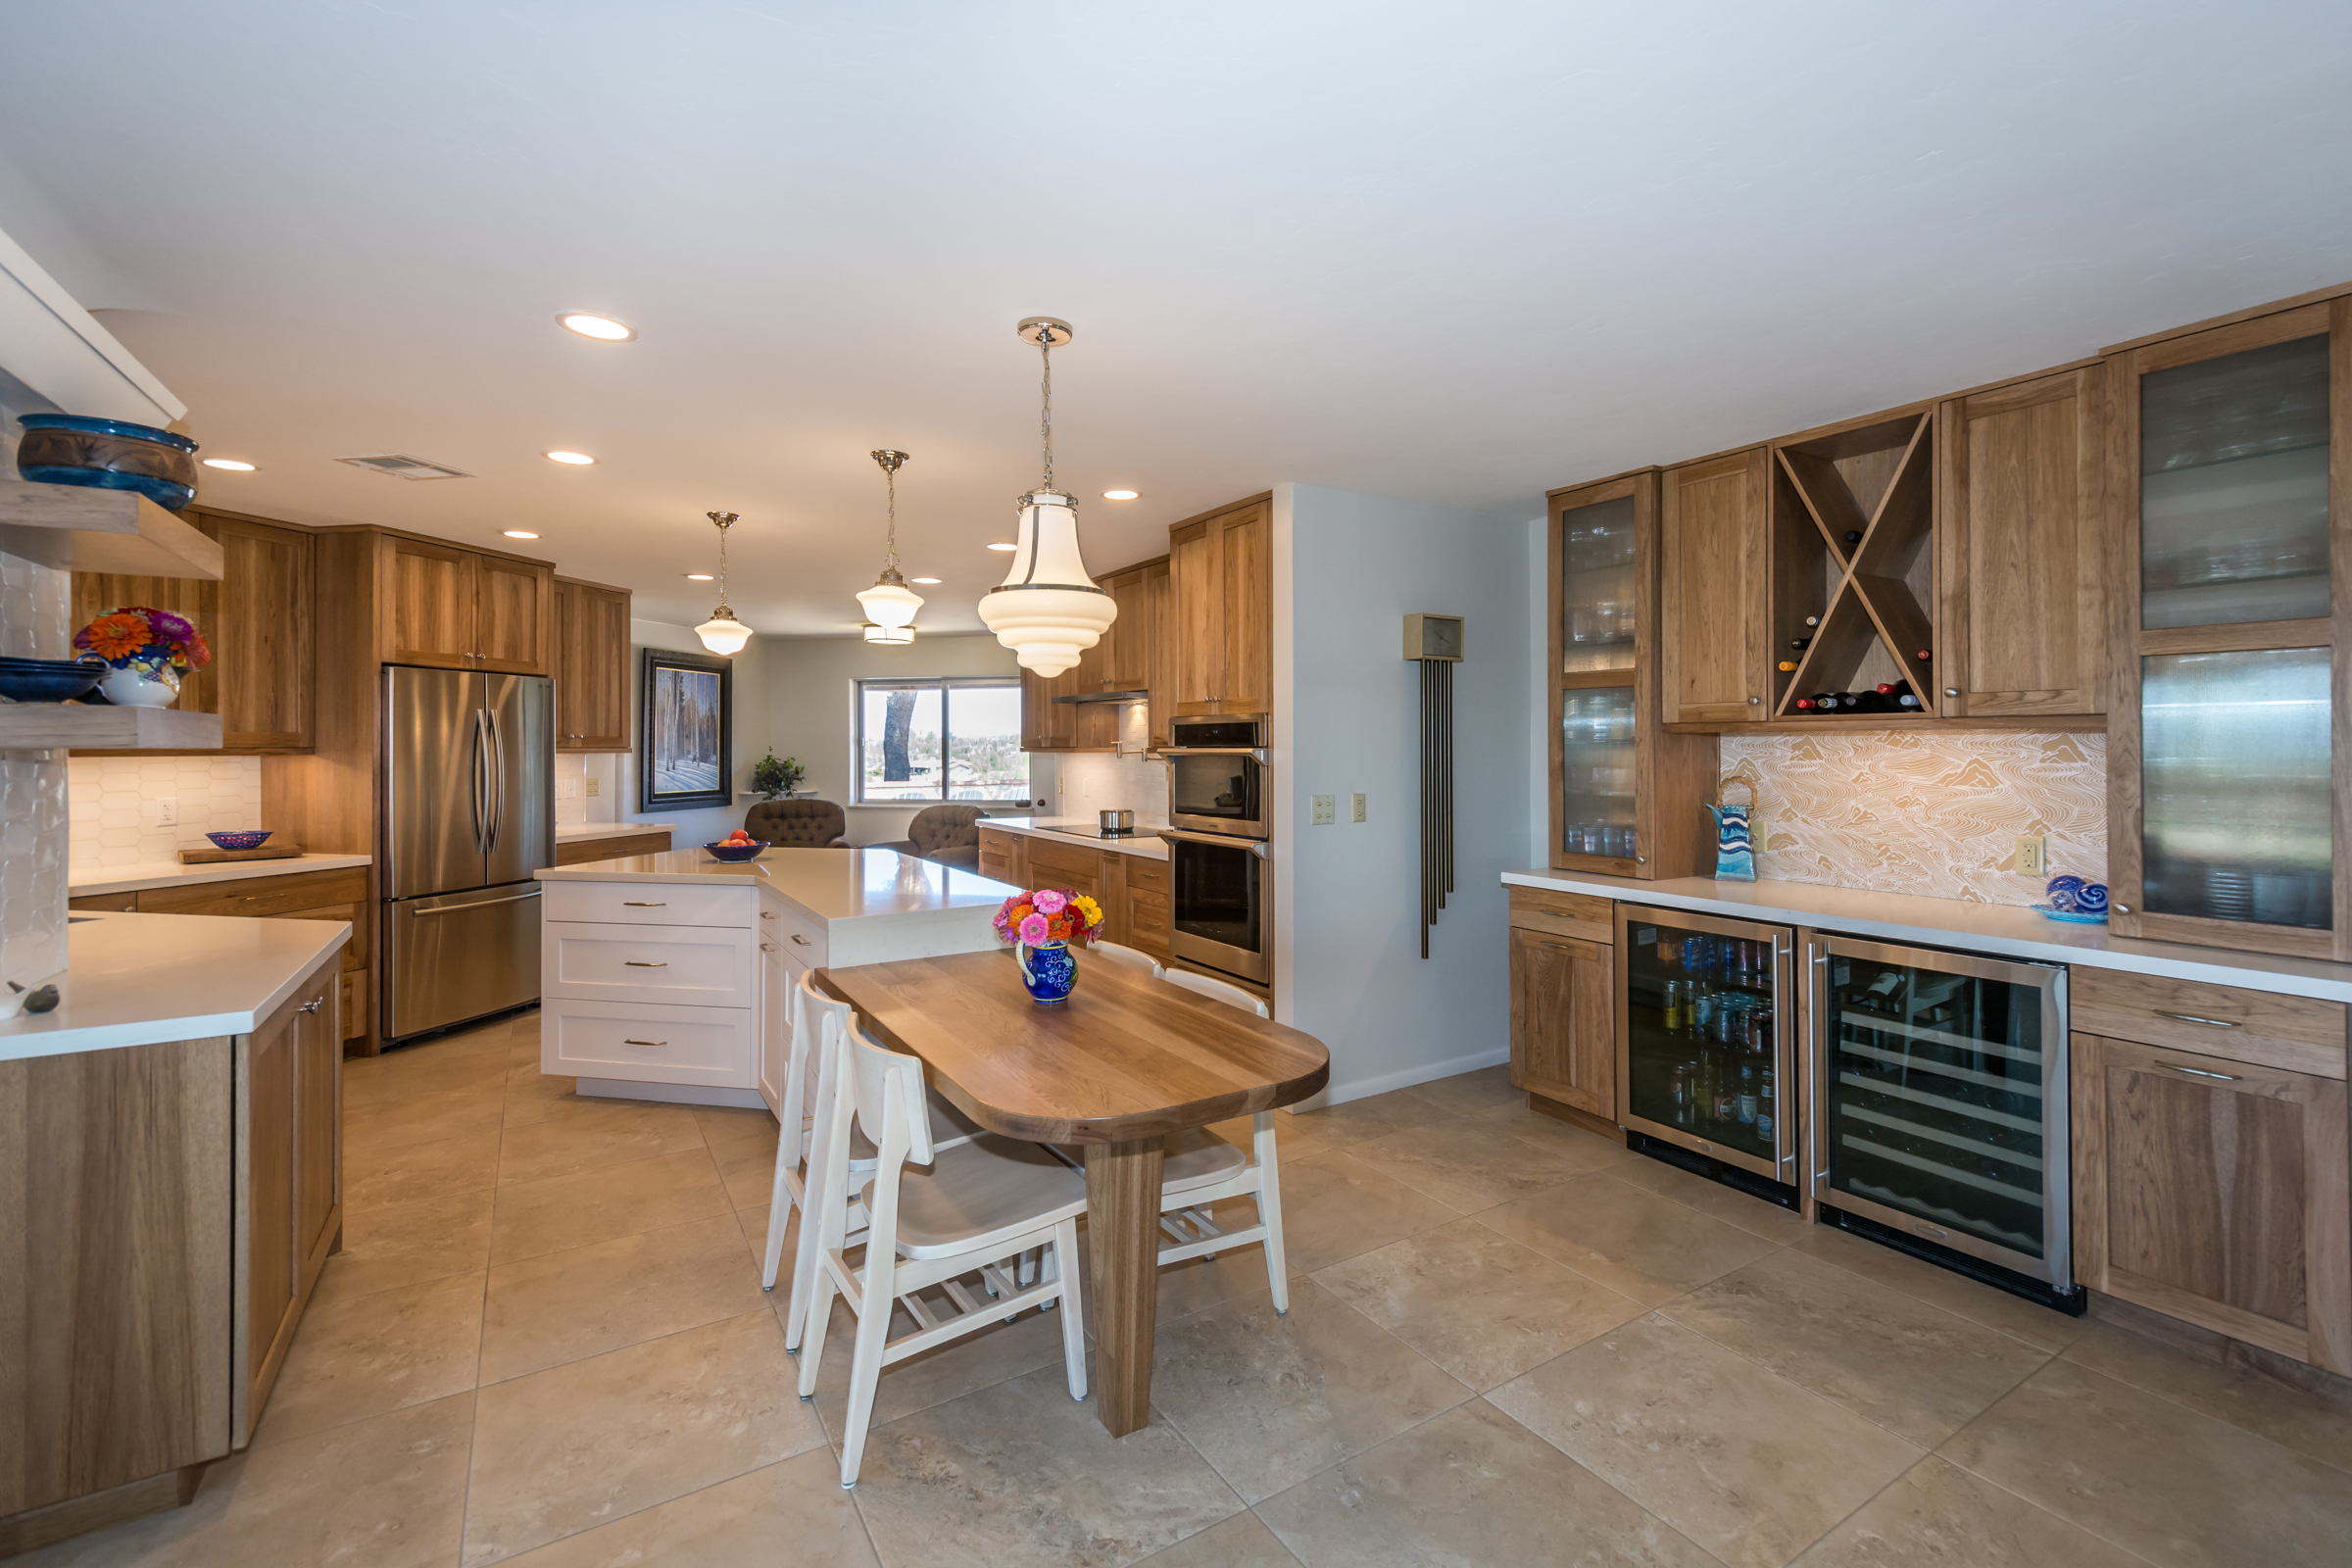 Canyon Cabinetry | Kitchen Design, Bath Remodel ...